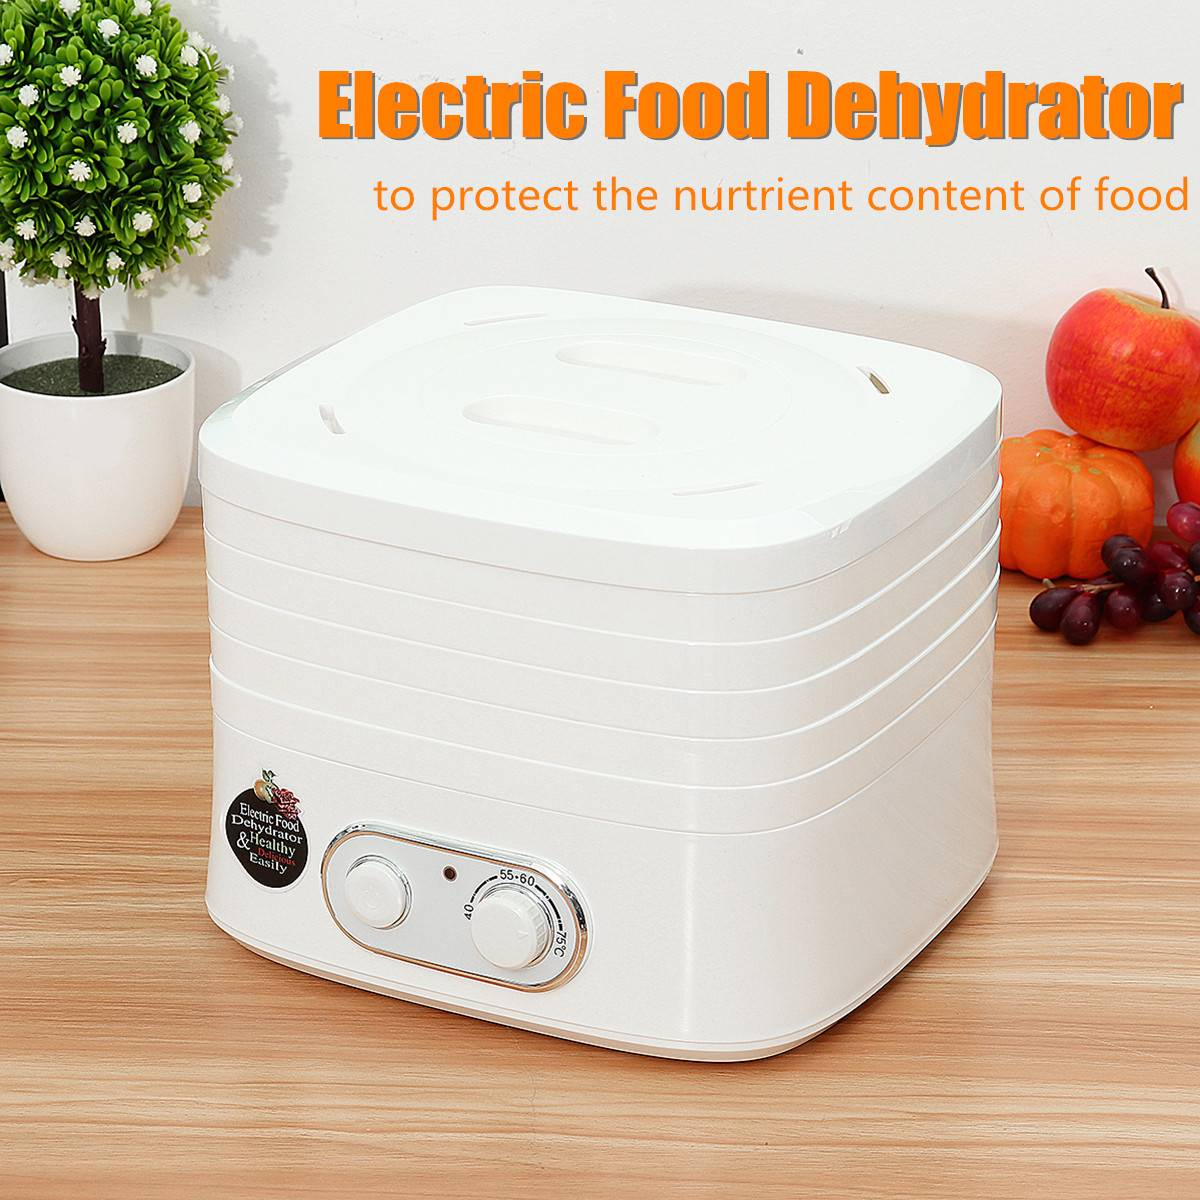 220V 230W 5 trays Electric Food Dehydrators Fruit Vegetable Meat Beef Snack Herb Home Kitchen Appliances Heating Dryer Machine